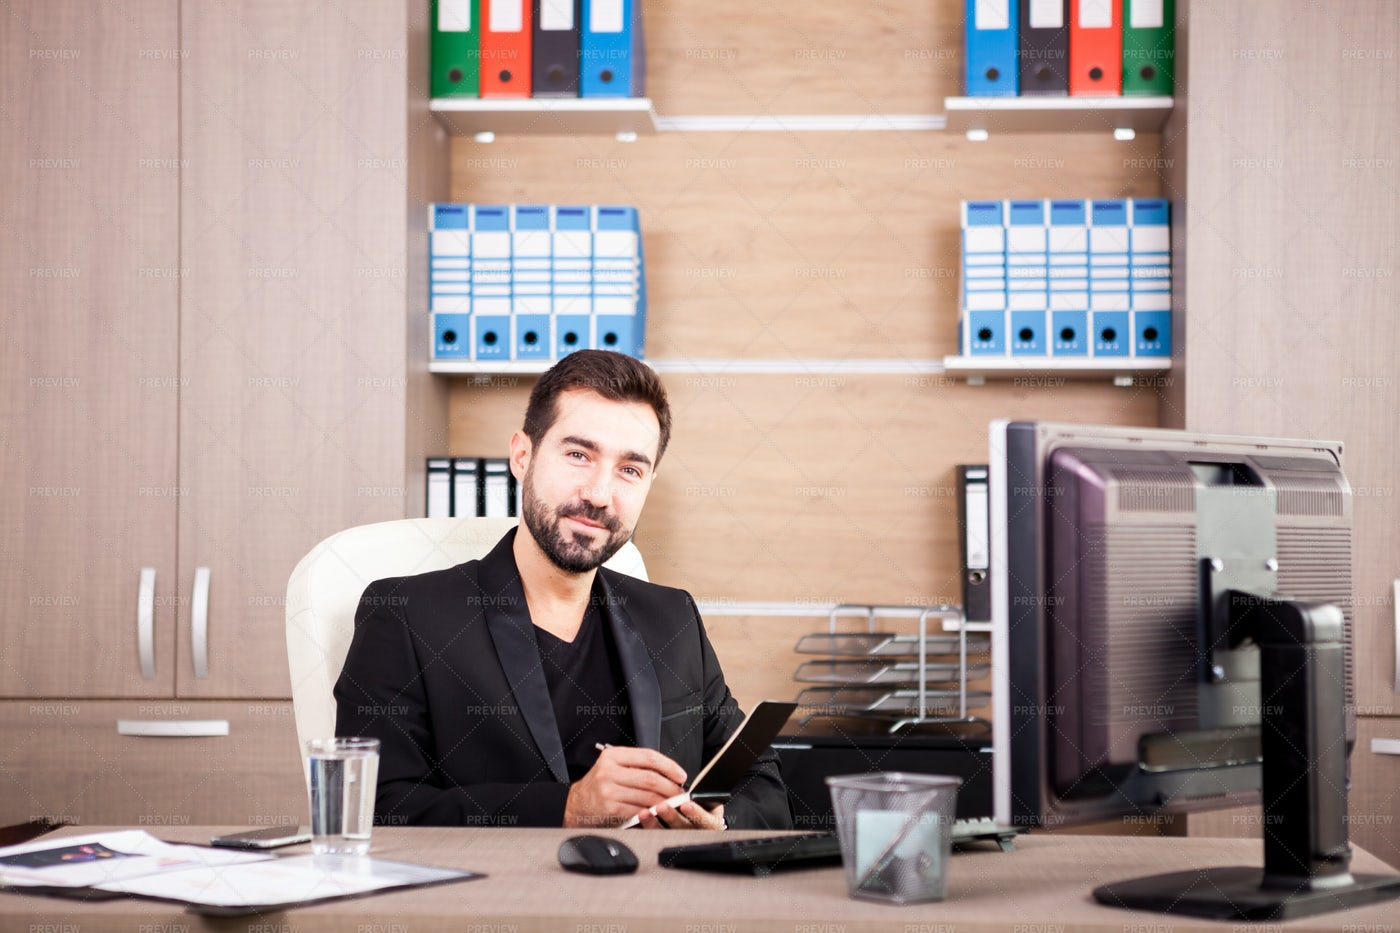 Businessman's Personal Office: Stock Photos